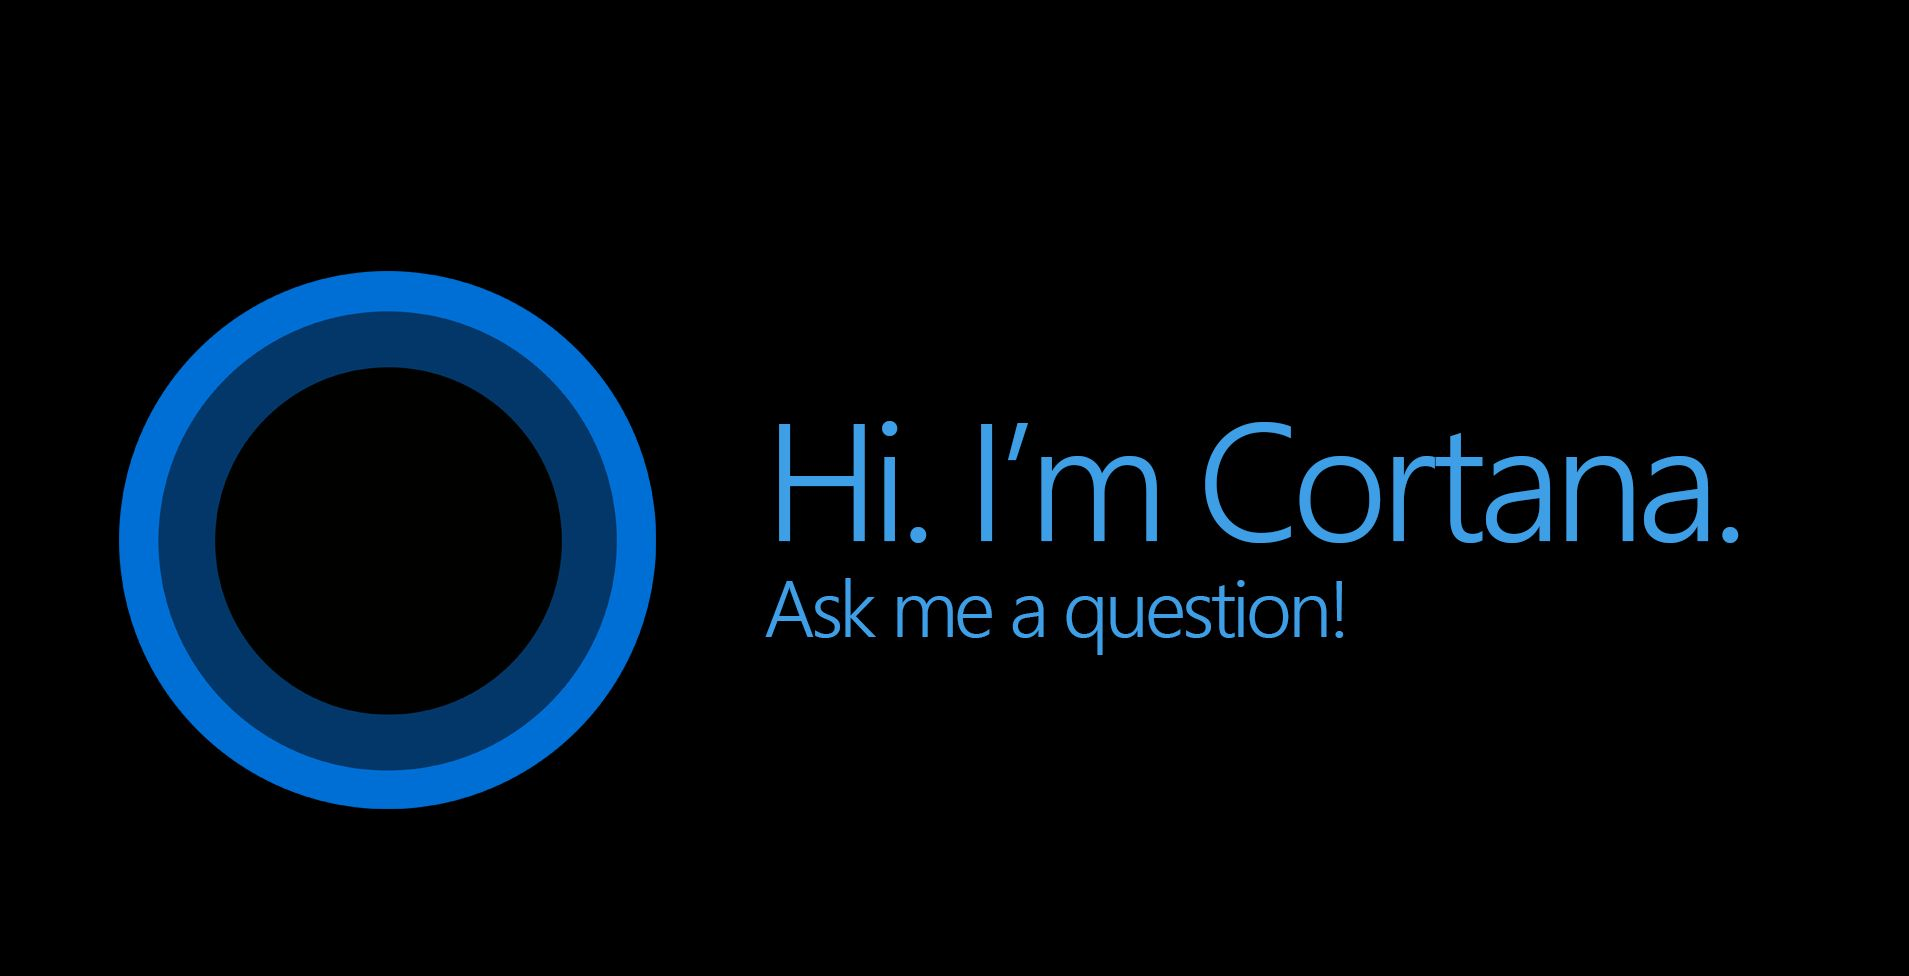 Hi, I'm Cortana, ask me a question